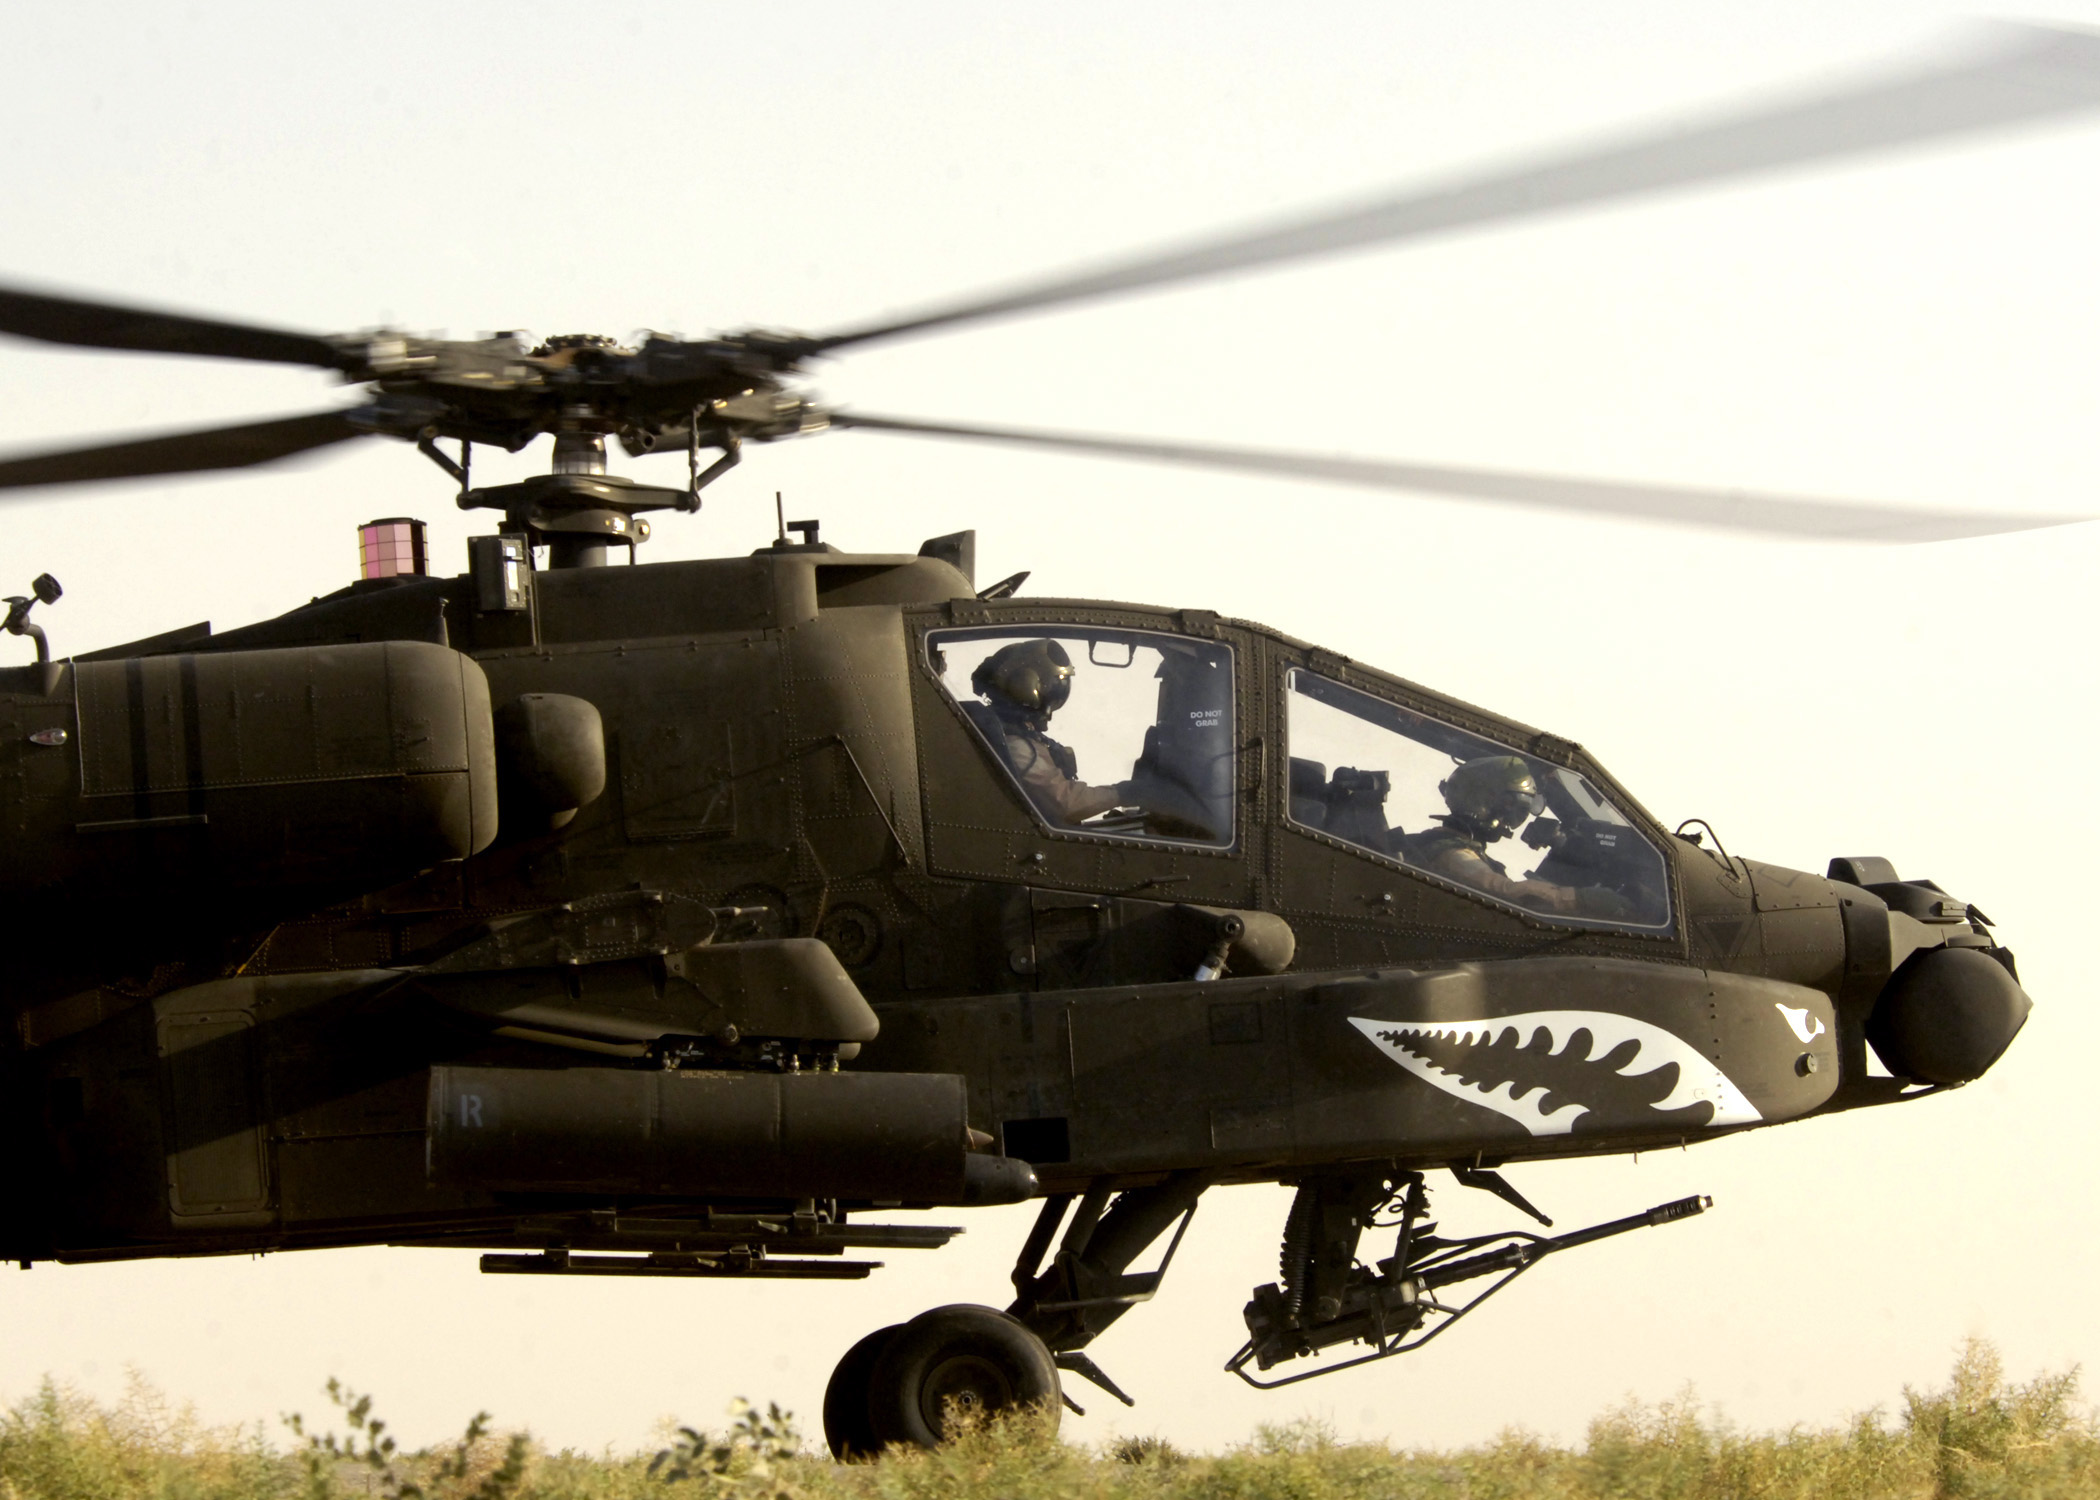 armée americaine - Page 2 US_Navy_050803-N-5027S-174_A_U.S._Army_AH-64_Apache_helicopter_prepares_to_takeoff_for_a_mission_in_Iraq